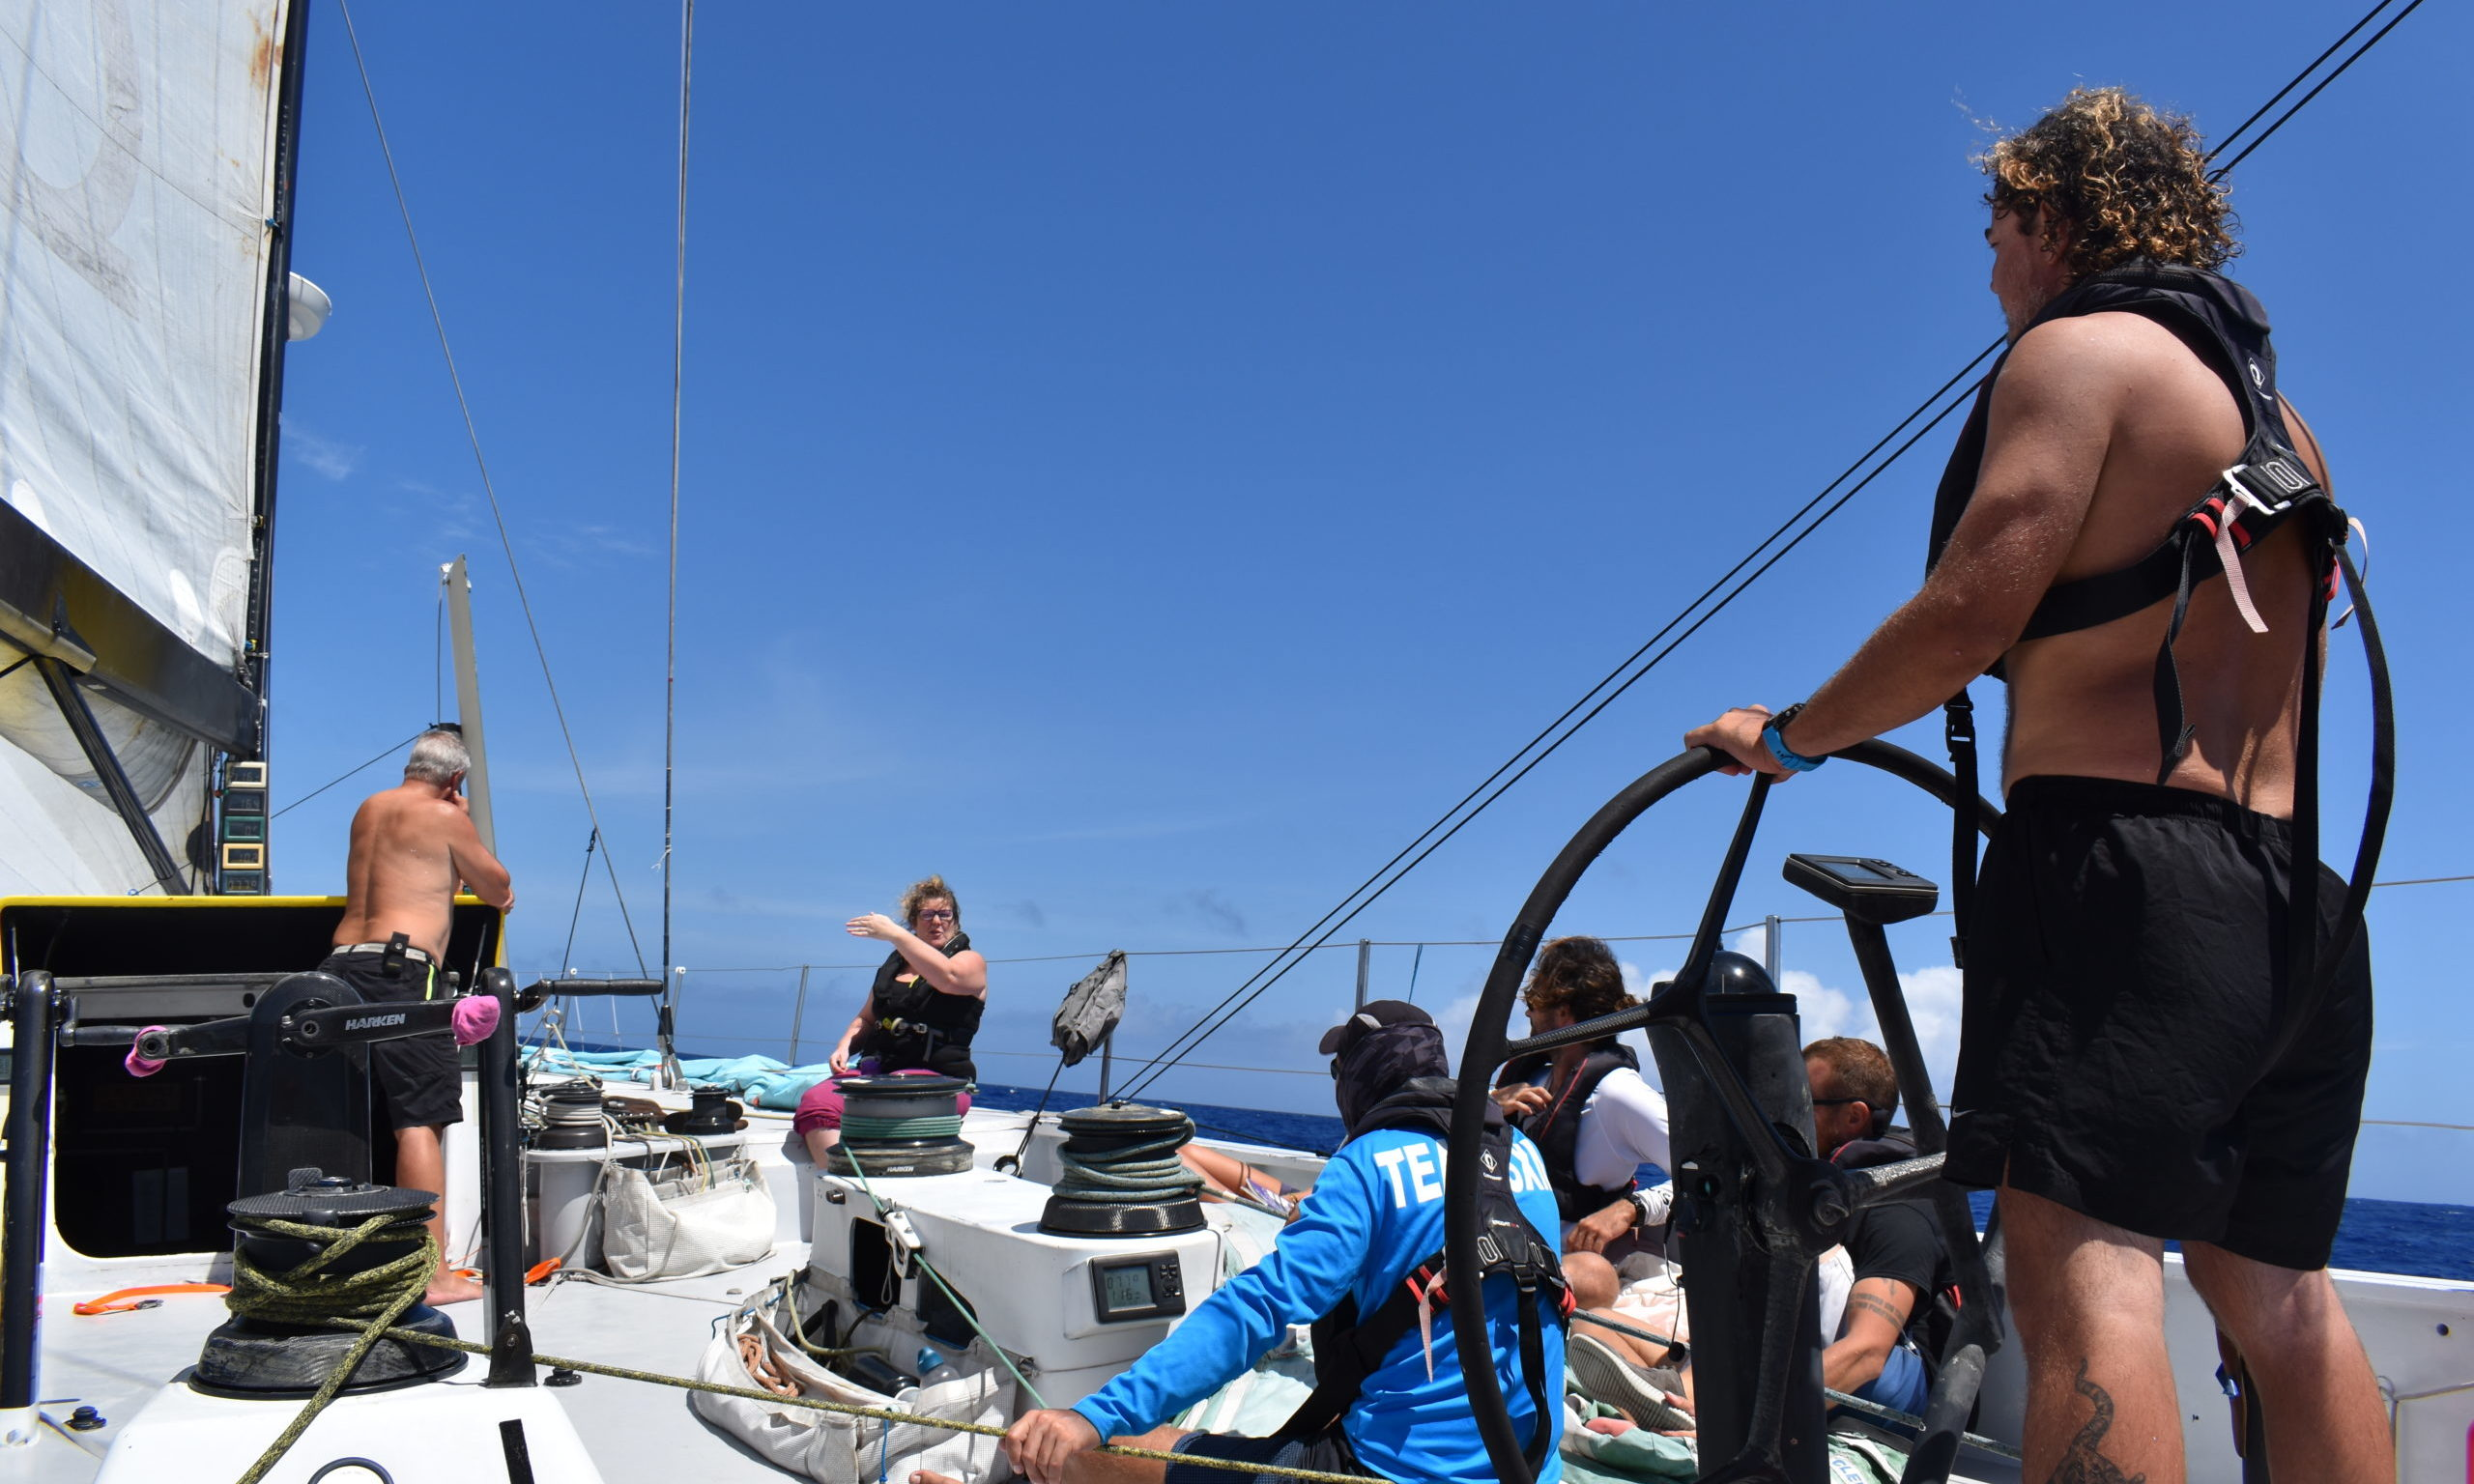 Claire gives instruction to the crew members